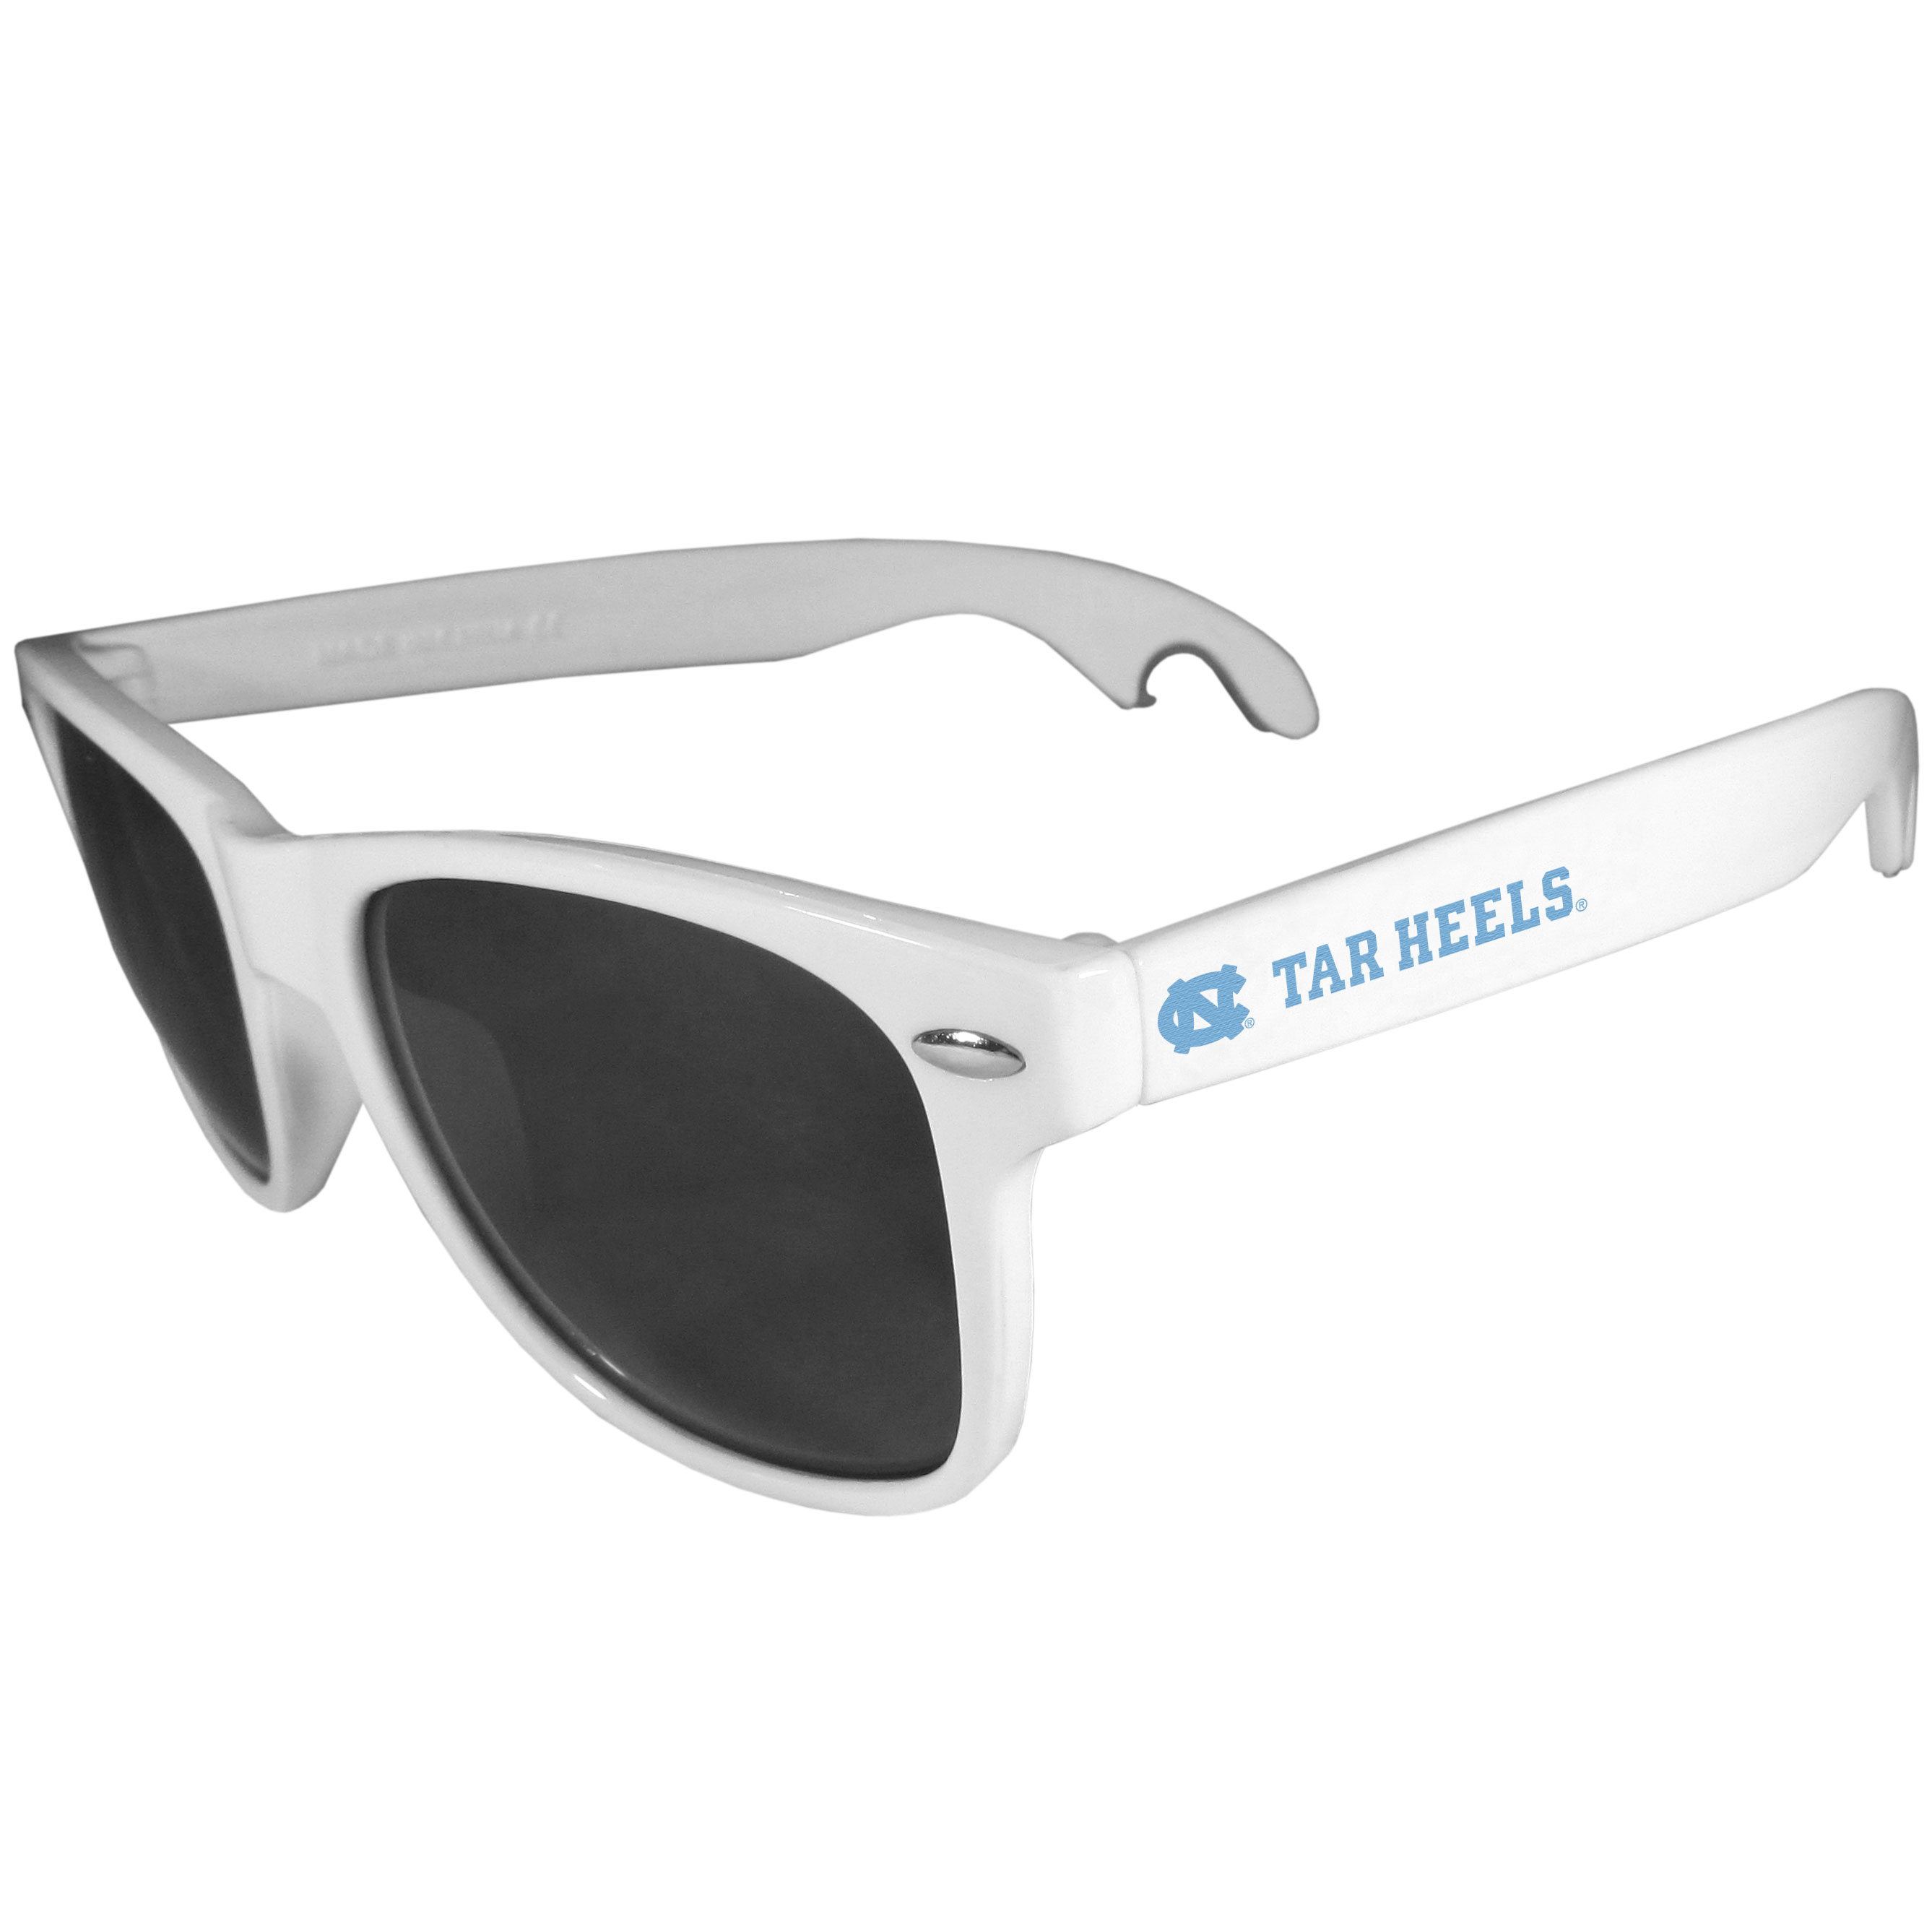 N. Carolina Tar Heels Beachfarer Bottle Opener Sunglasses, White - Seriously, these sunglasses open bottles! Keep the party going with these amazing N. Carolina Tar Heels bottle opener sunglasses. The stylish retro frames feature team designs on the arms and functional bottle openers on the end of the arms. Whether you are at the beach or having a backyard BBQ on game day, these shades will keep your eyes protected with 100% UVA/UVB protection and keep you hydrated with the handy bottle opener arms.